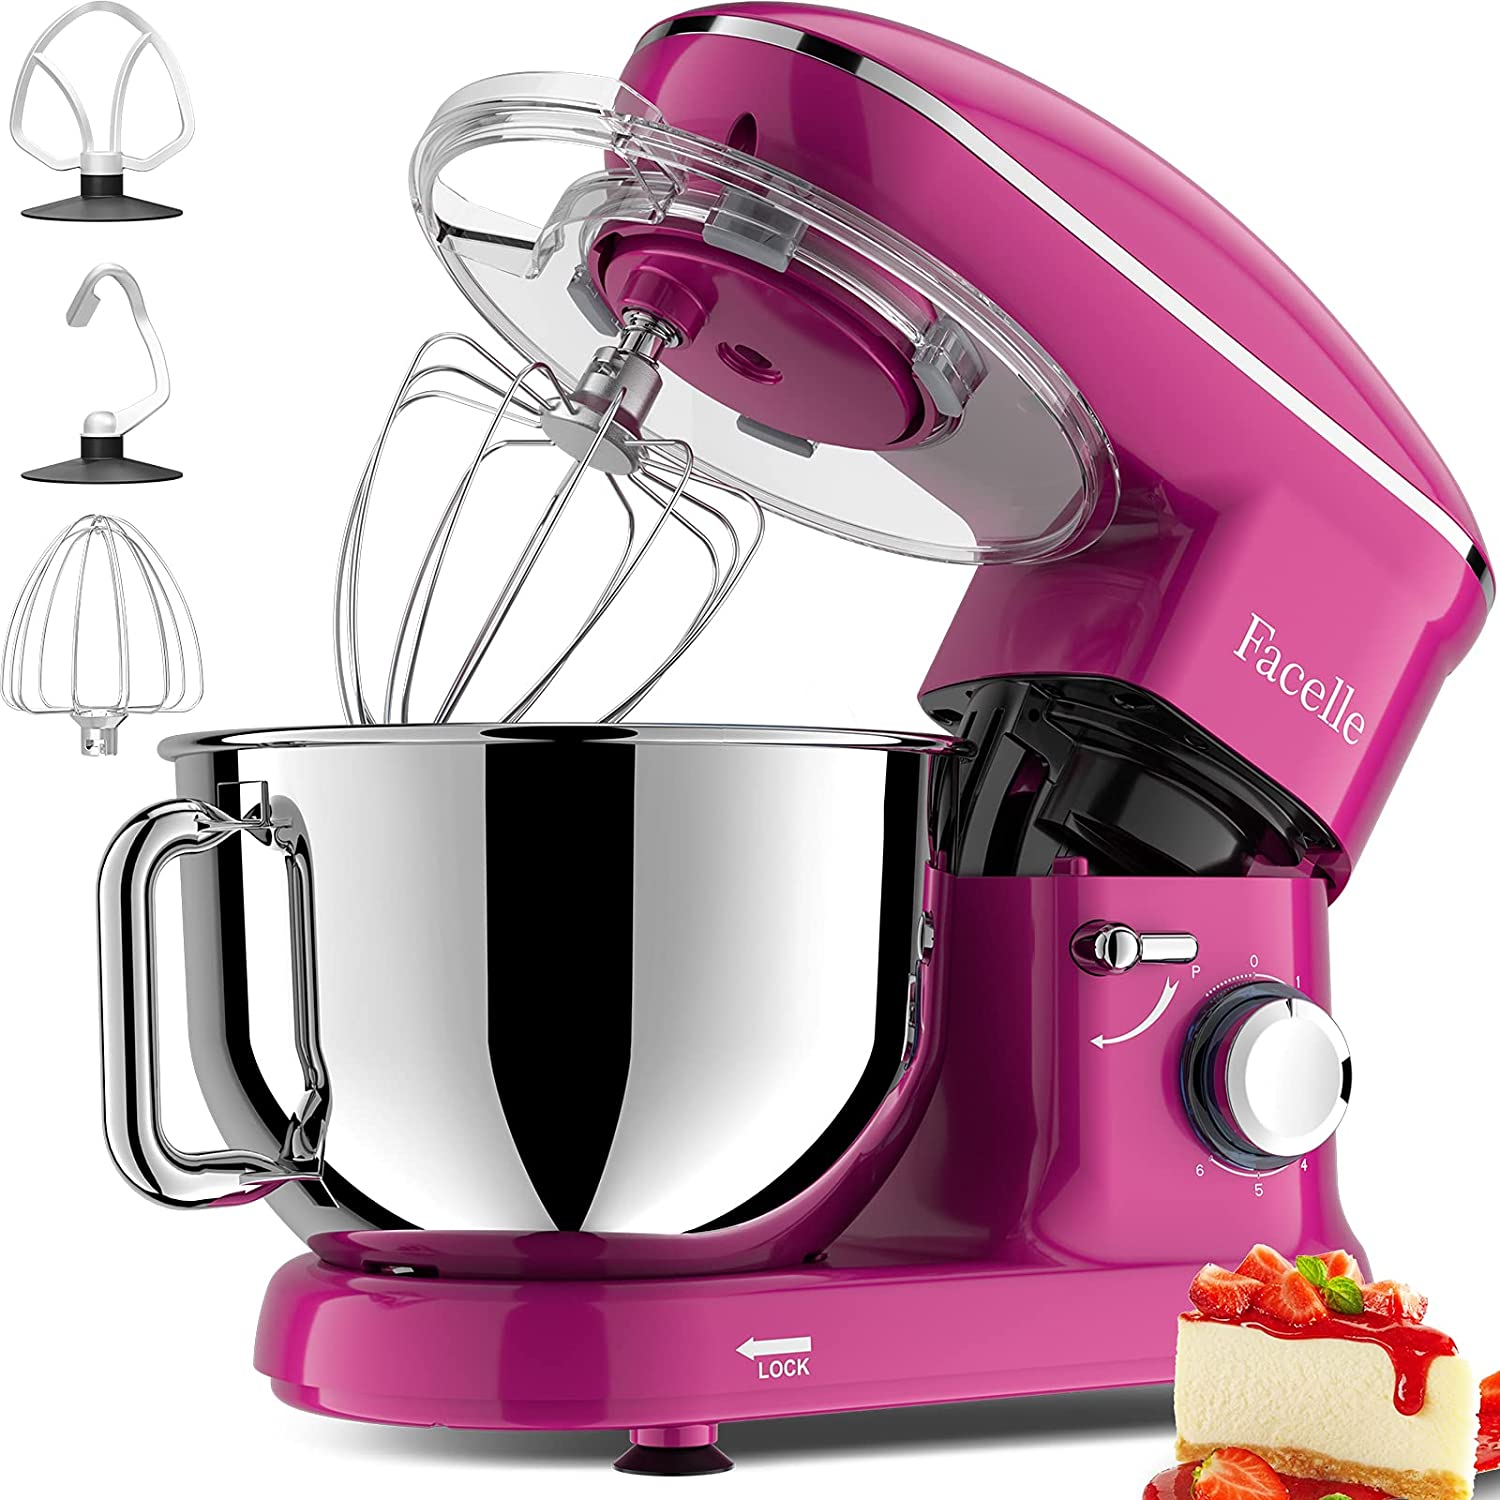 Facelle Stand Mixer, 660W 6-Speed Tilt-Head Food Mixers Kitchen Electric Stand Mixer with 5.8QT Stainless Steel Bowl, Dough Hook, Flat Beater, Whisk, Splash Guard, for Baking, Cakes, Cookie (Purple)